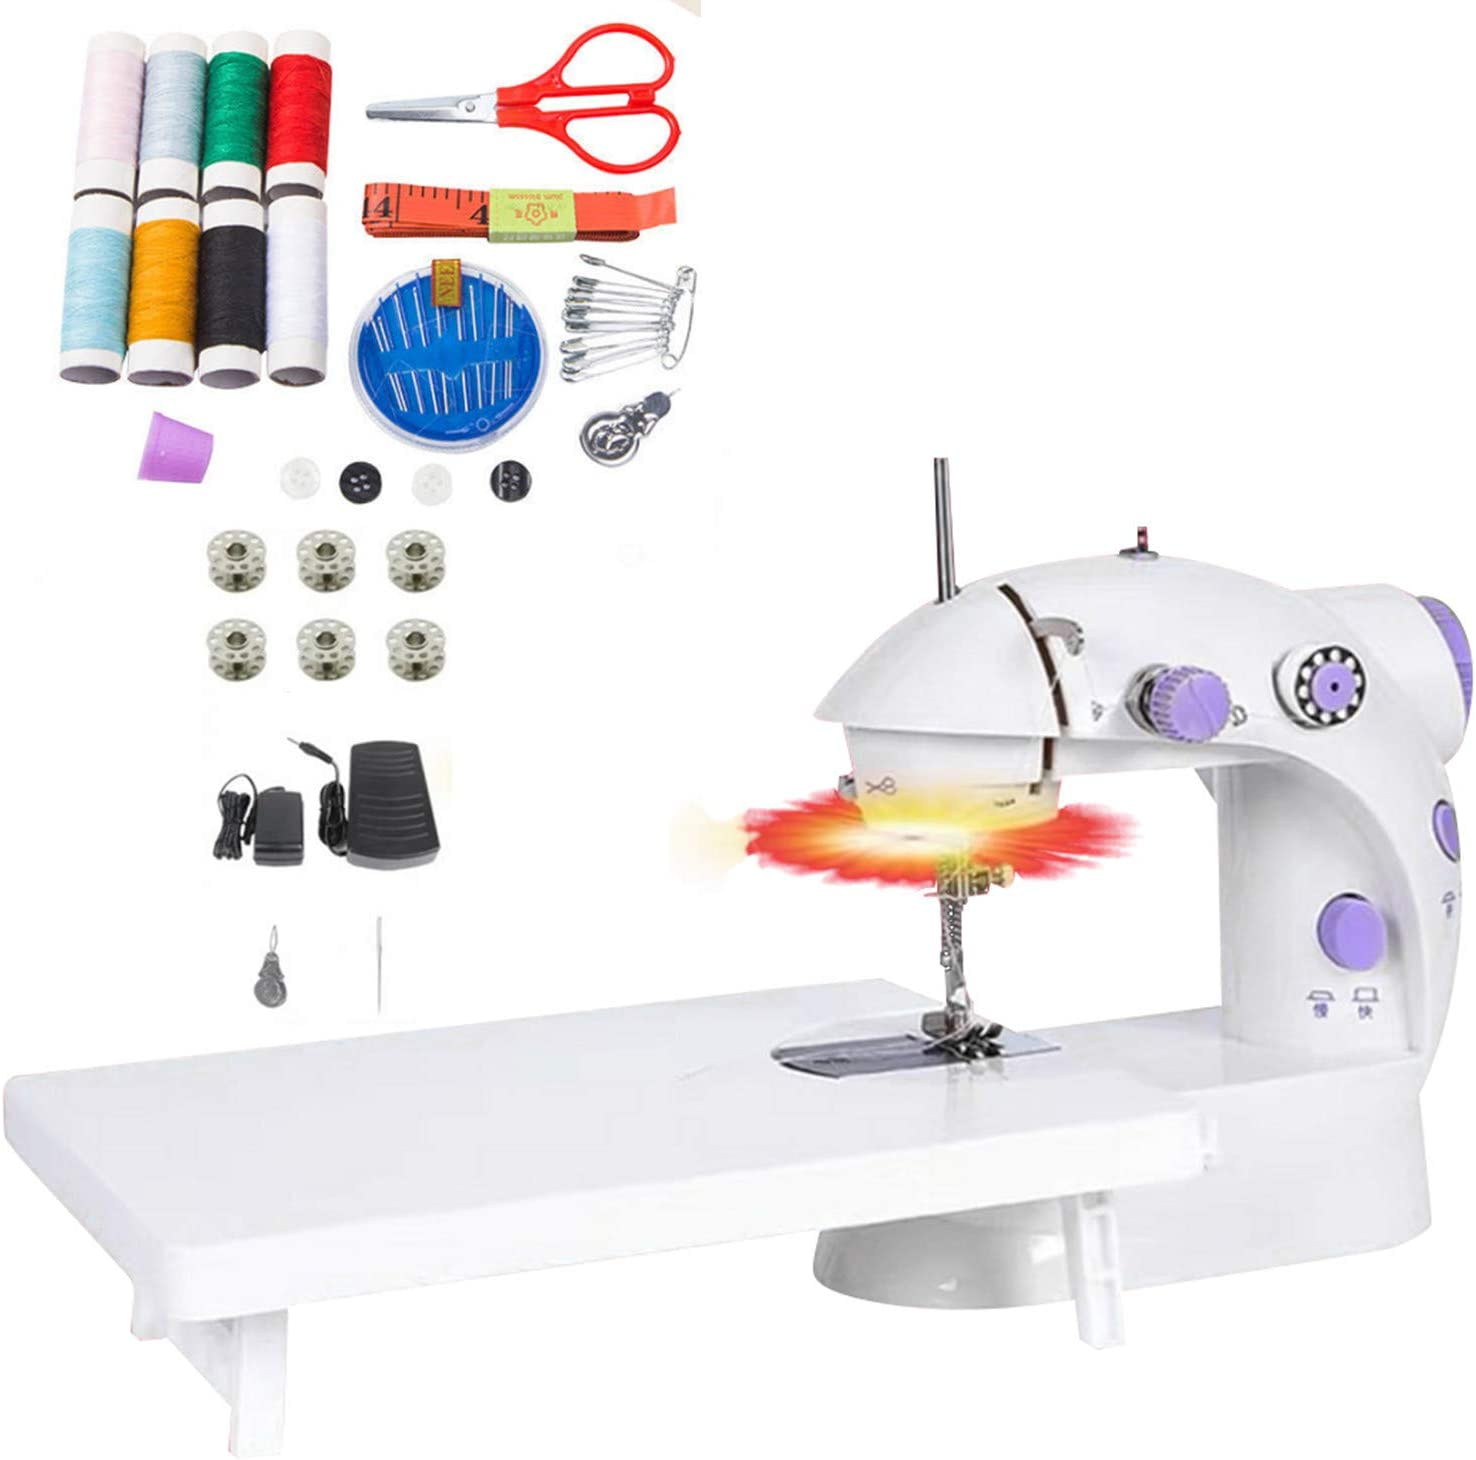 Max 43% OFF Sewing Machine Mini Size Small Crafting Electric Portable Sale SALE% OFF Mendin